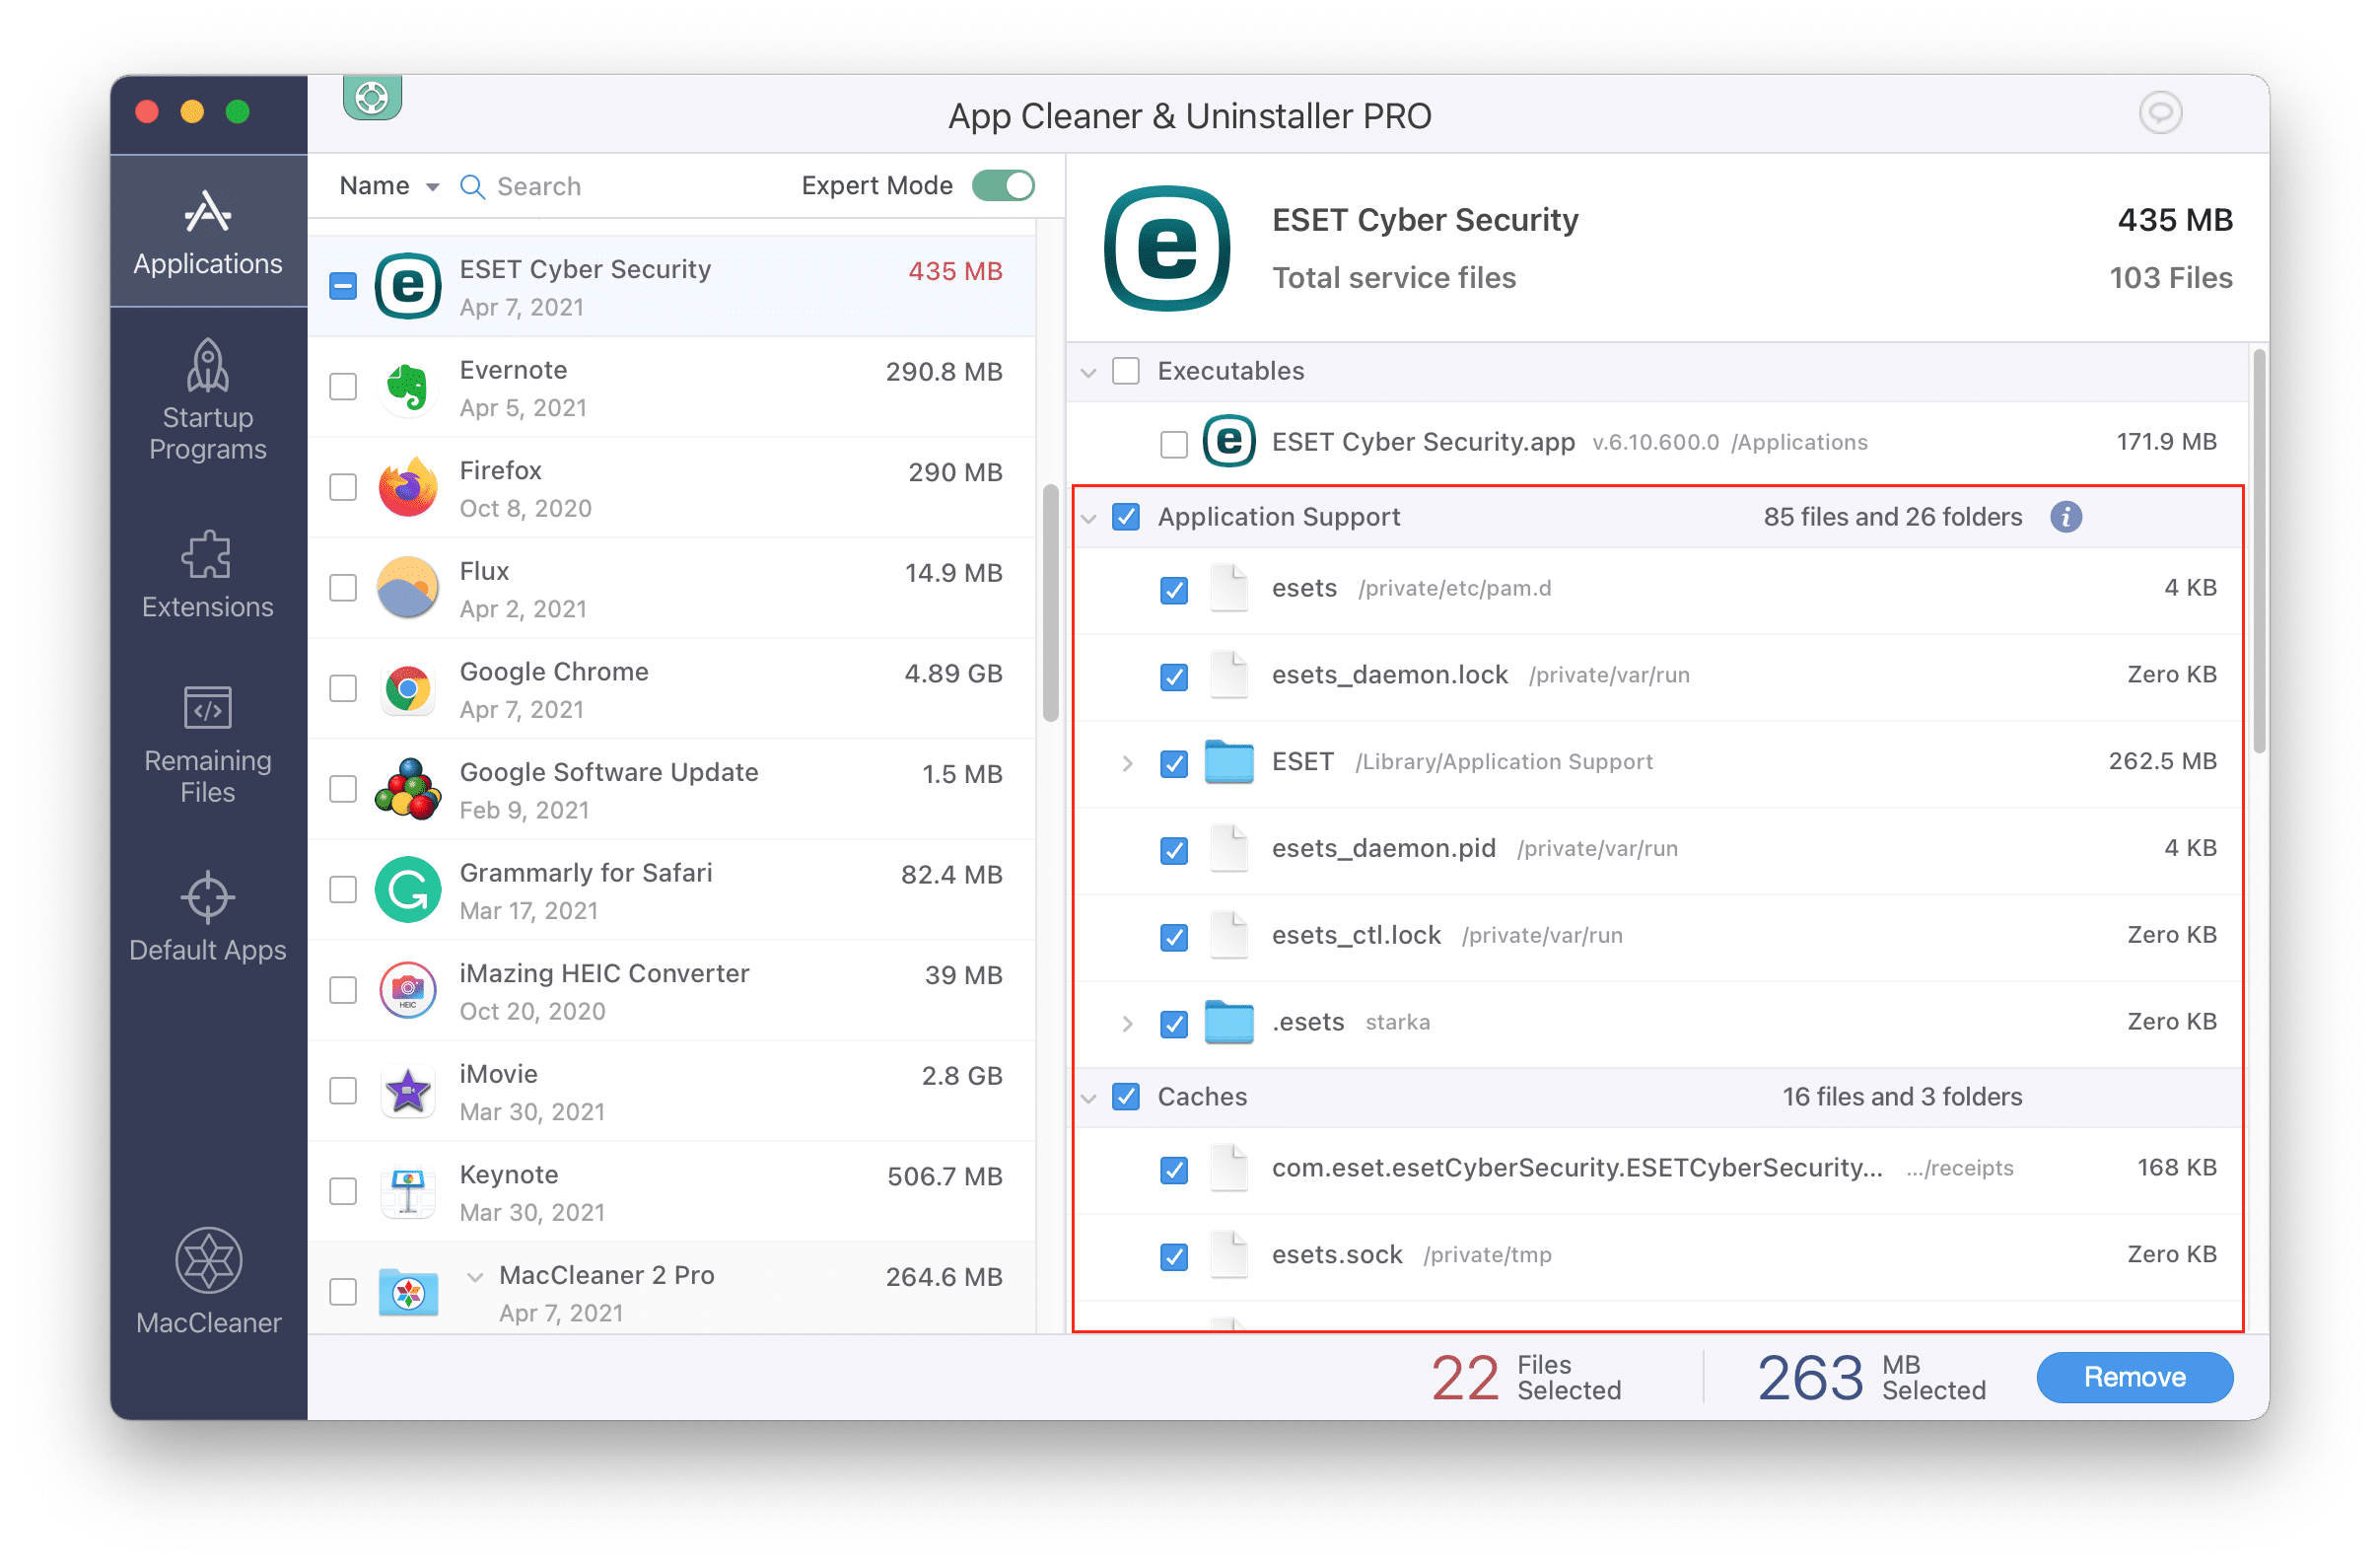 App Cleaner & Uninstaller window with Eset's support files selected